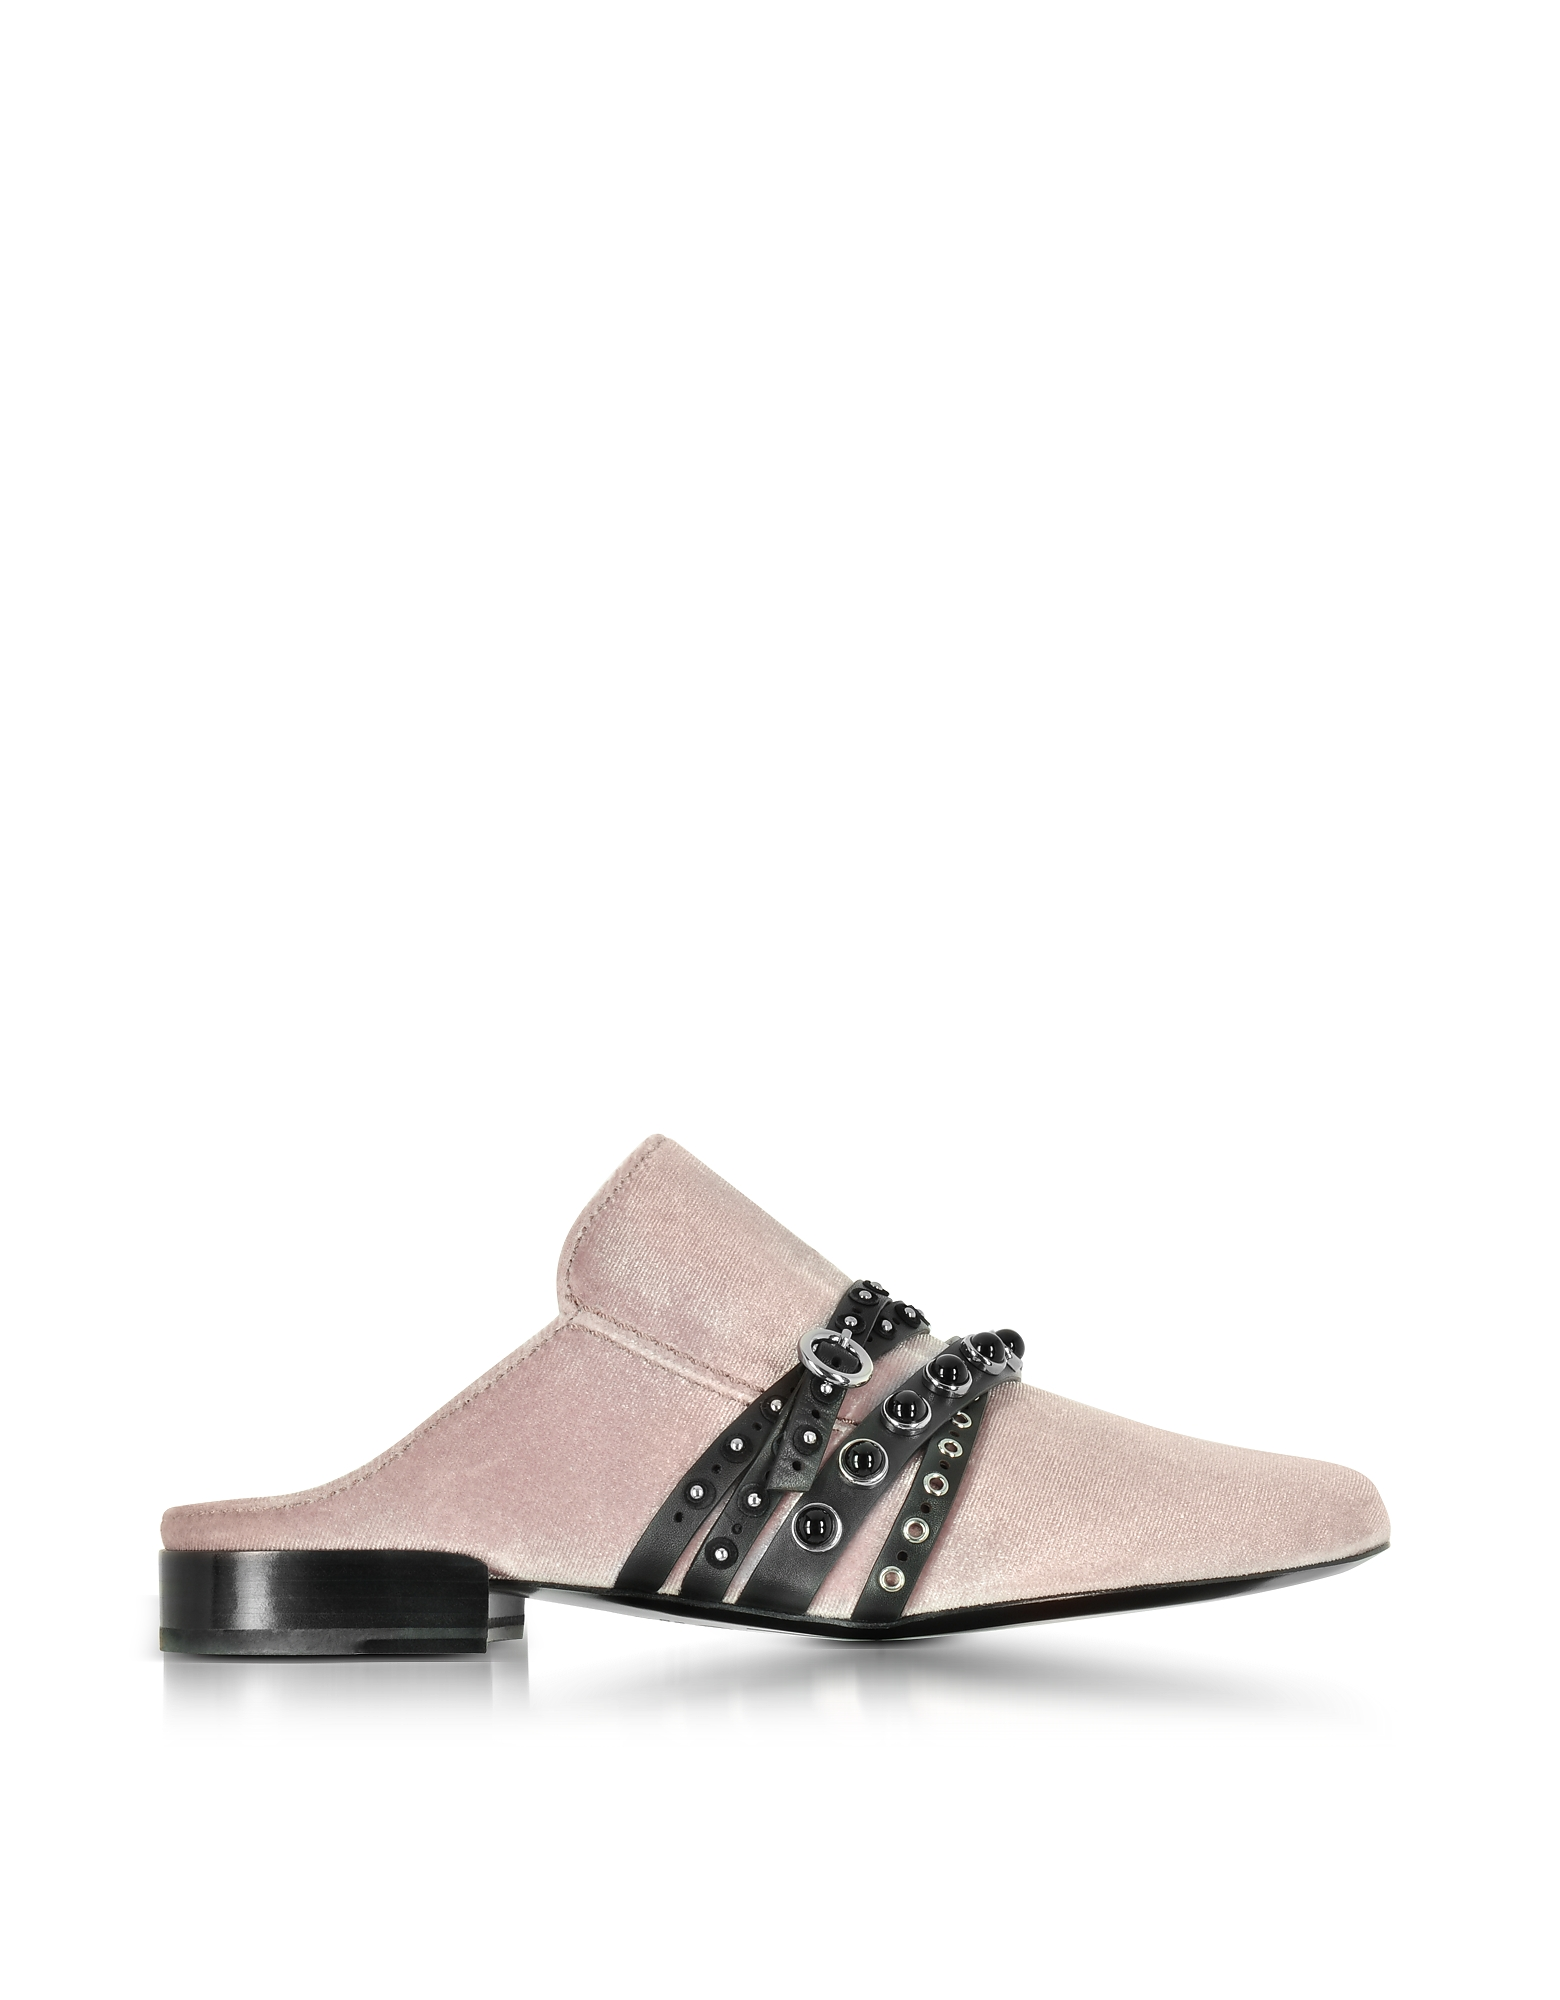 3.1 Phillip Lim Shoes, Louie Blush Velvet Flat Mules